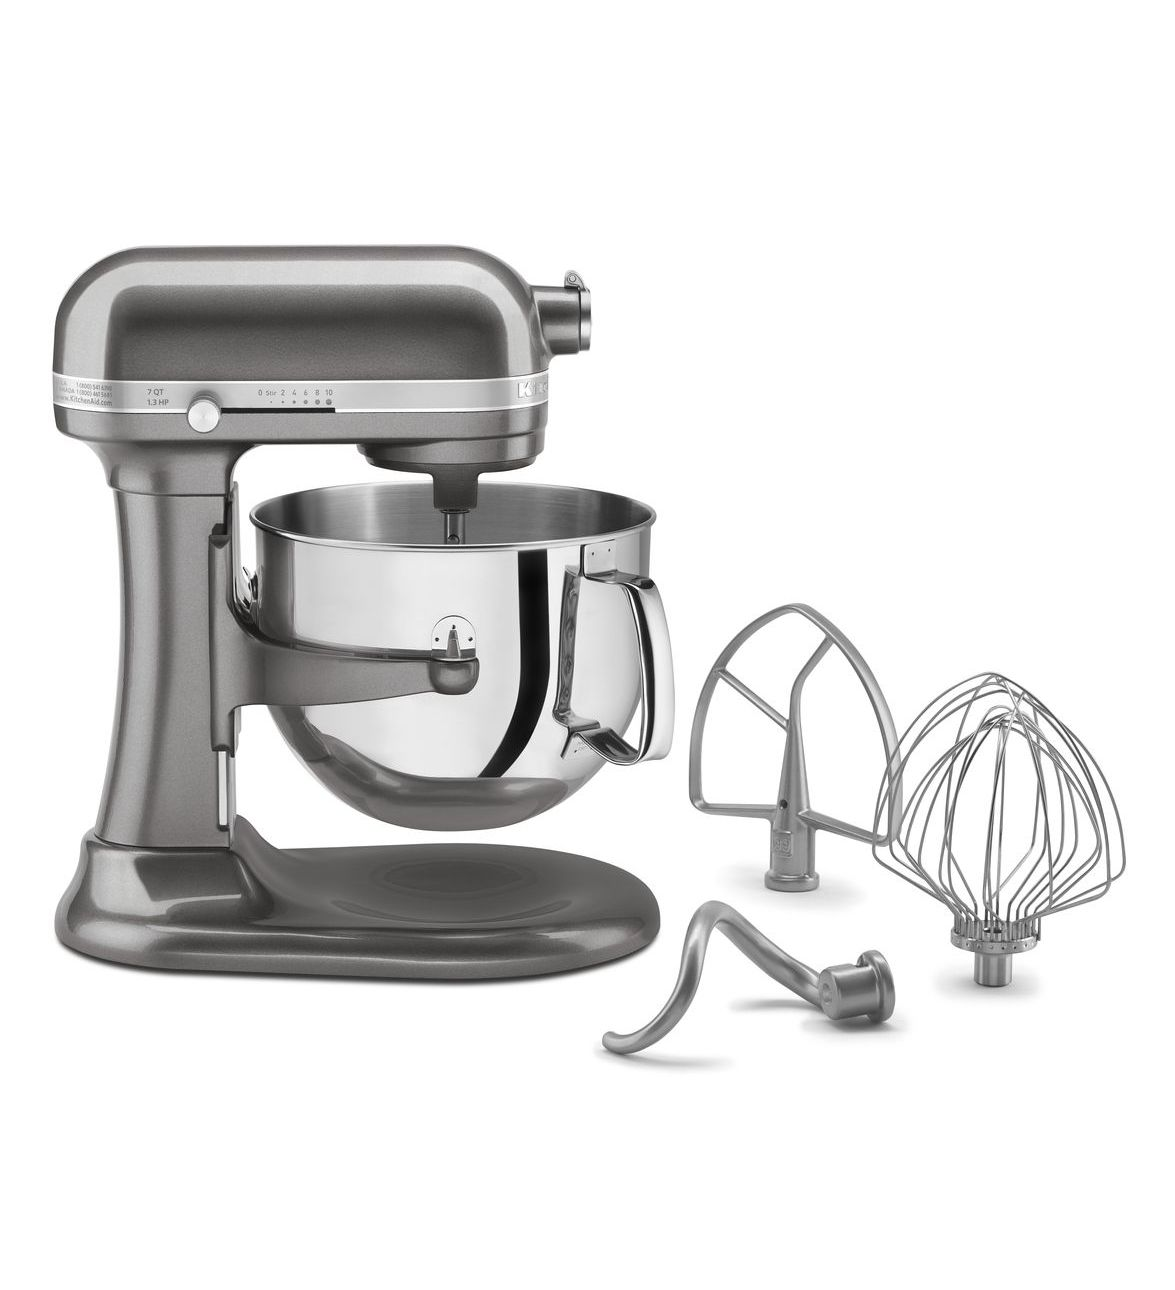 Giveaway Win A Kitchenaid Pro Line 7 Quart Stand Mixer